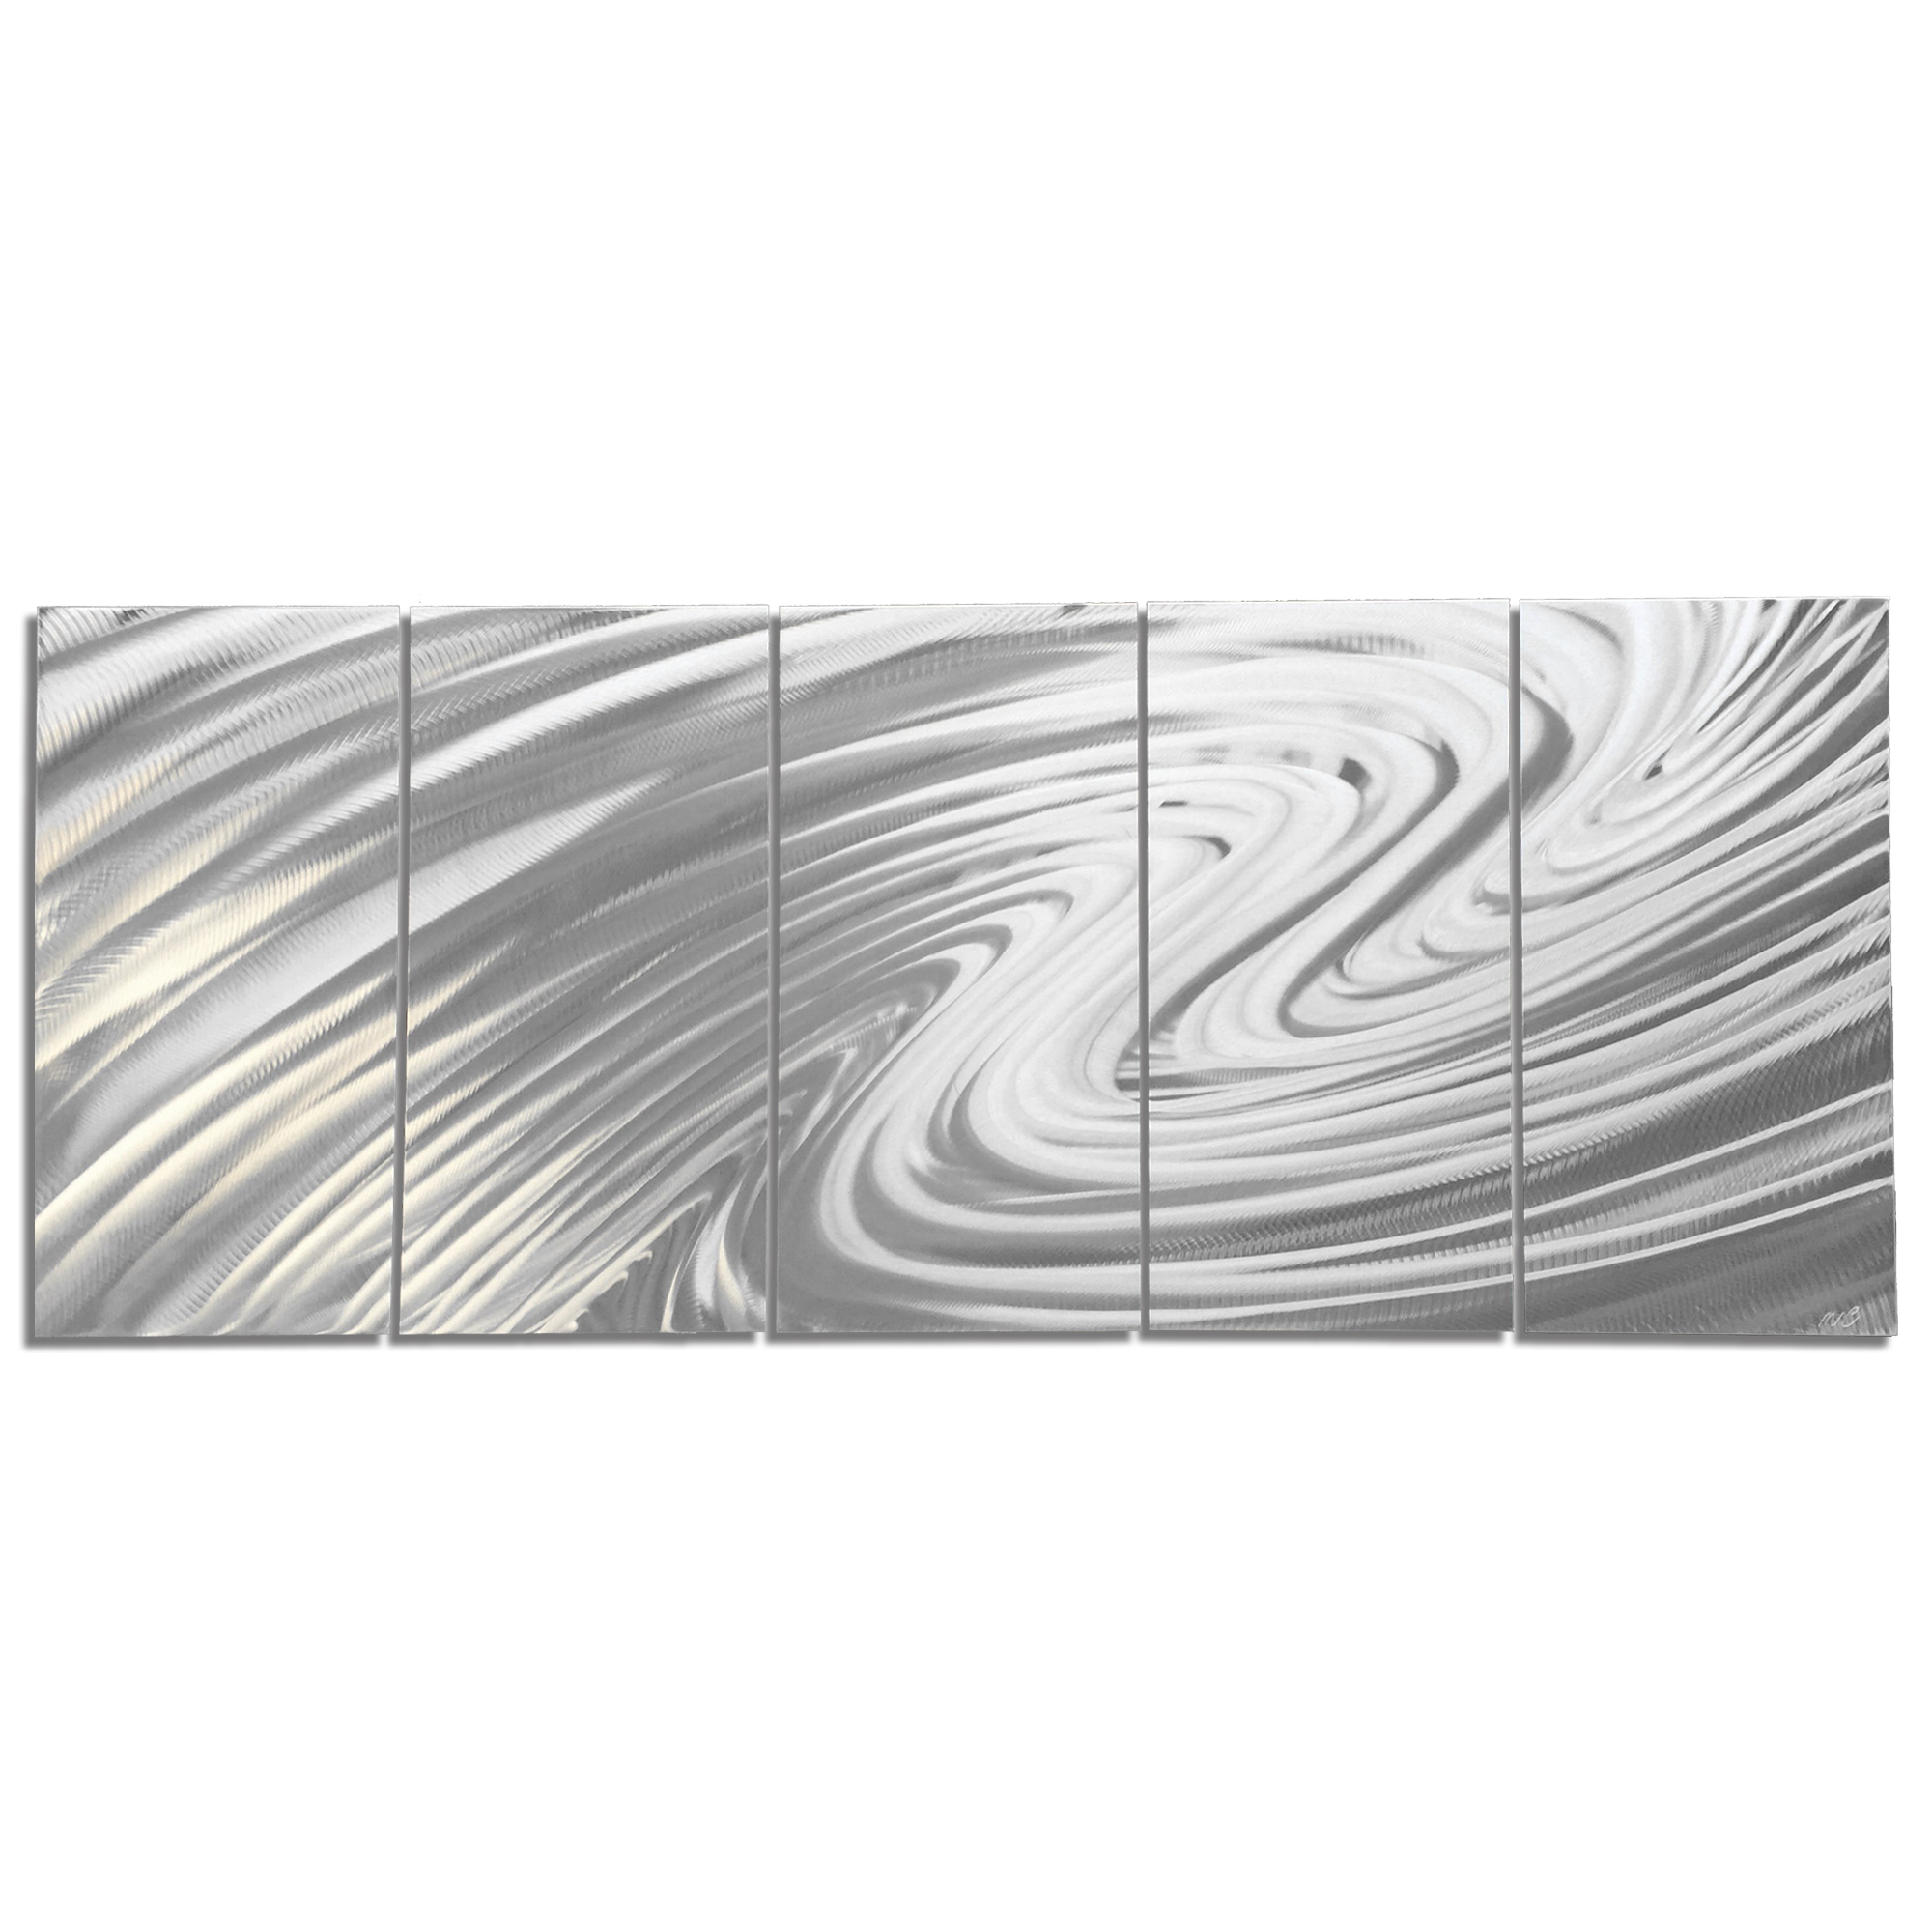 Modern Metal Art 'The Wave' - Soothing Wavy Artwork on Natural Aluminum